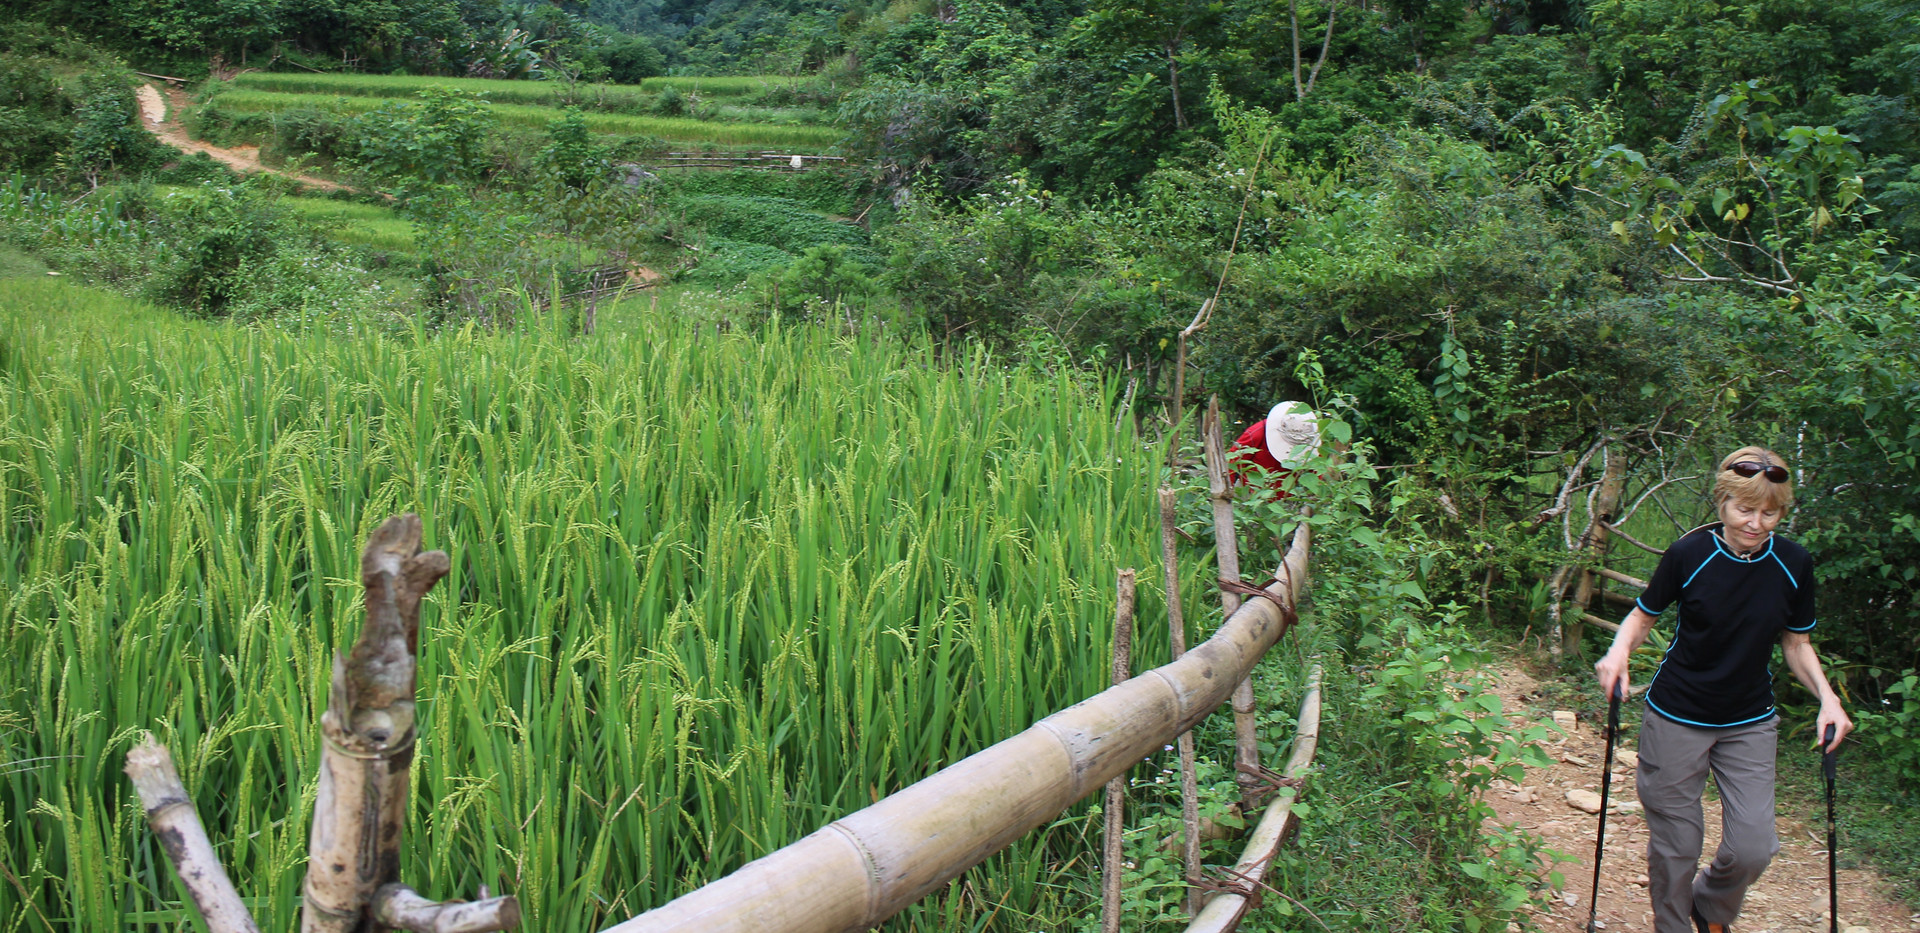 Bac son trekking path cross to the rice fields